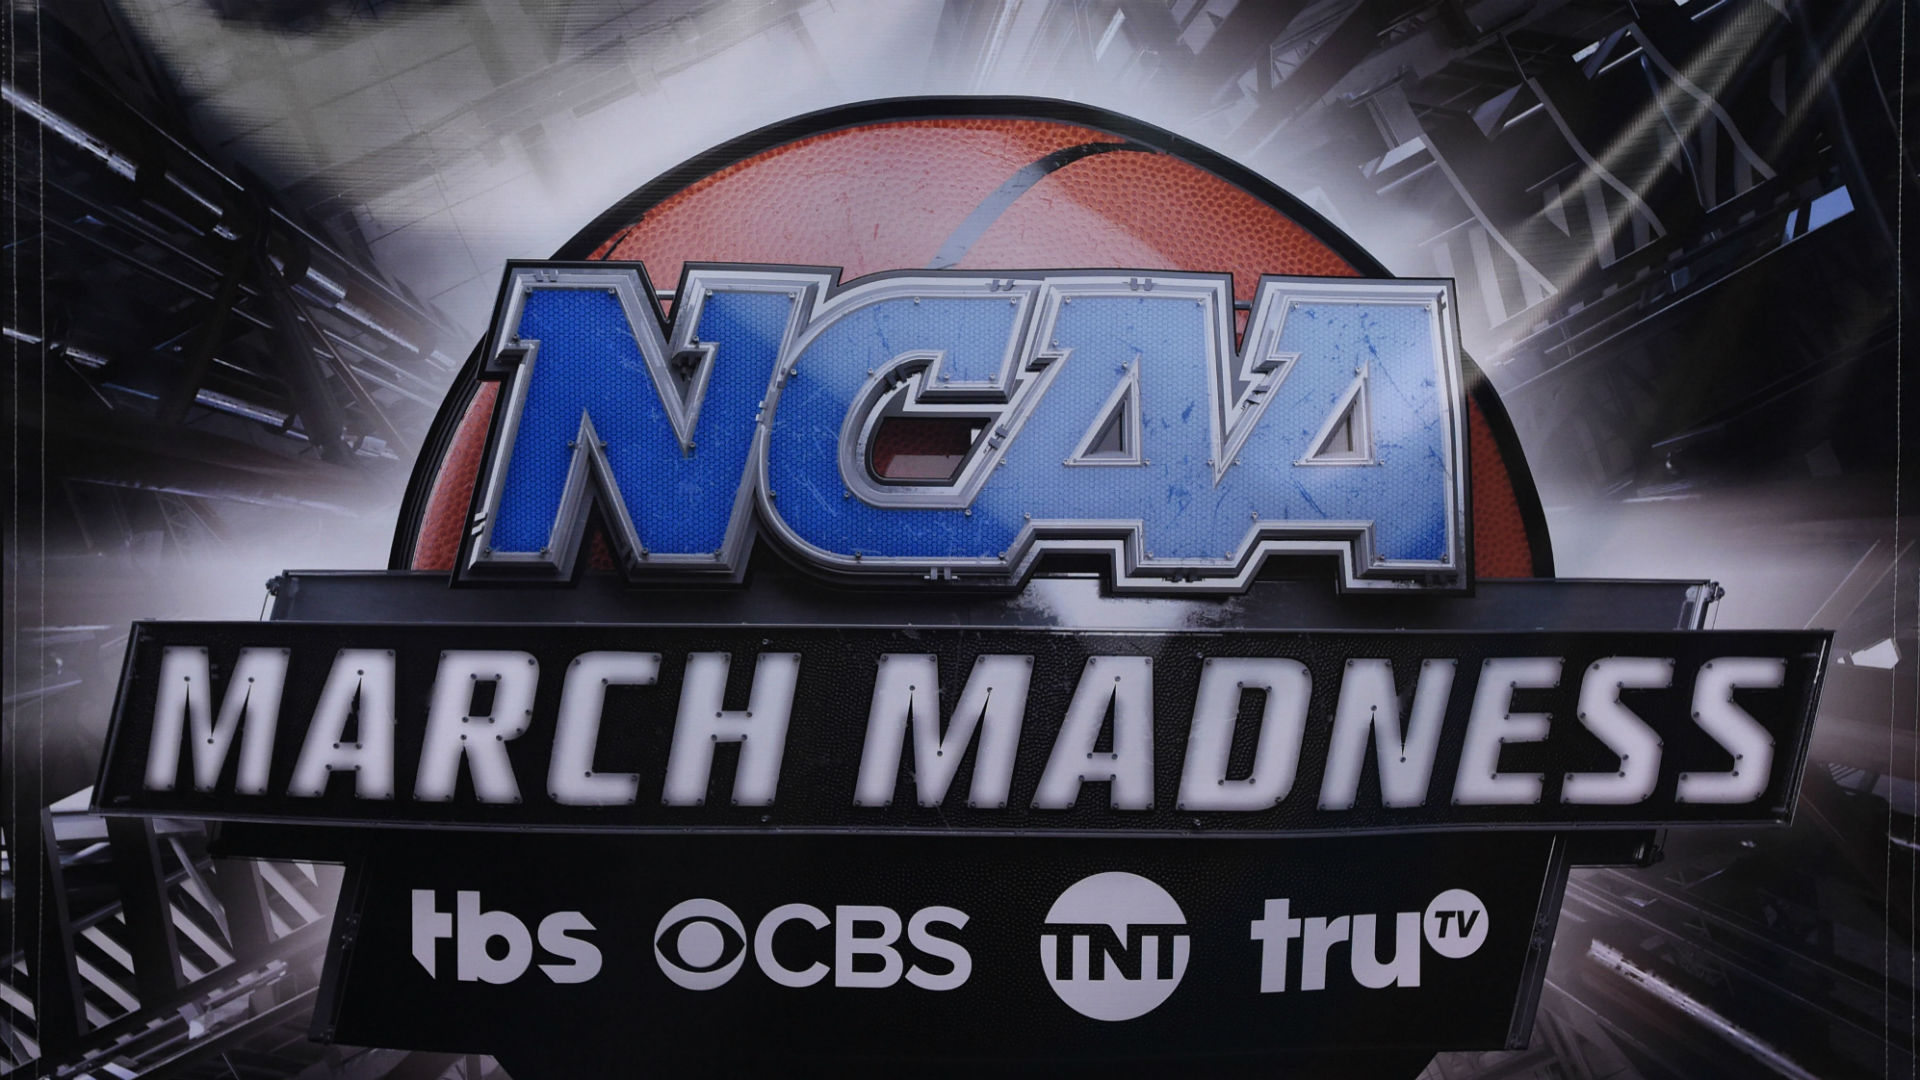 Selection Sunday 2019: Show Time, TV Channel, Live Stream